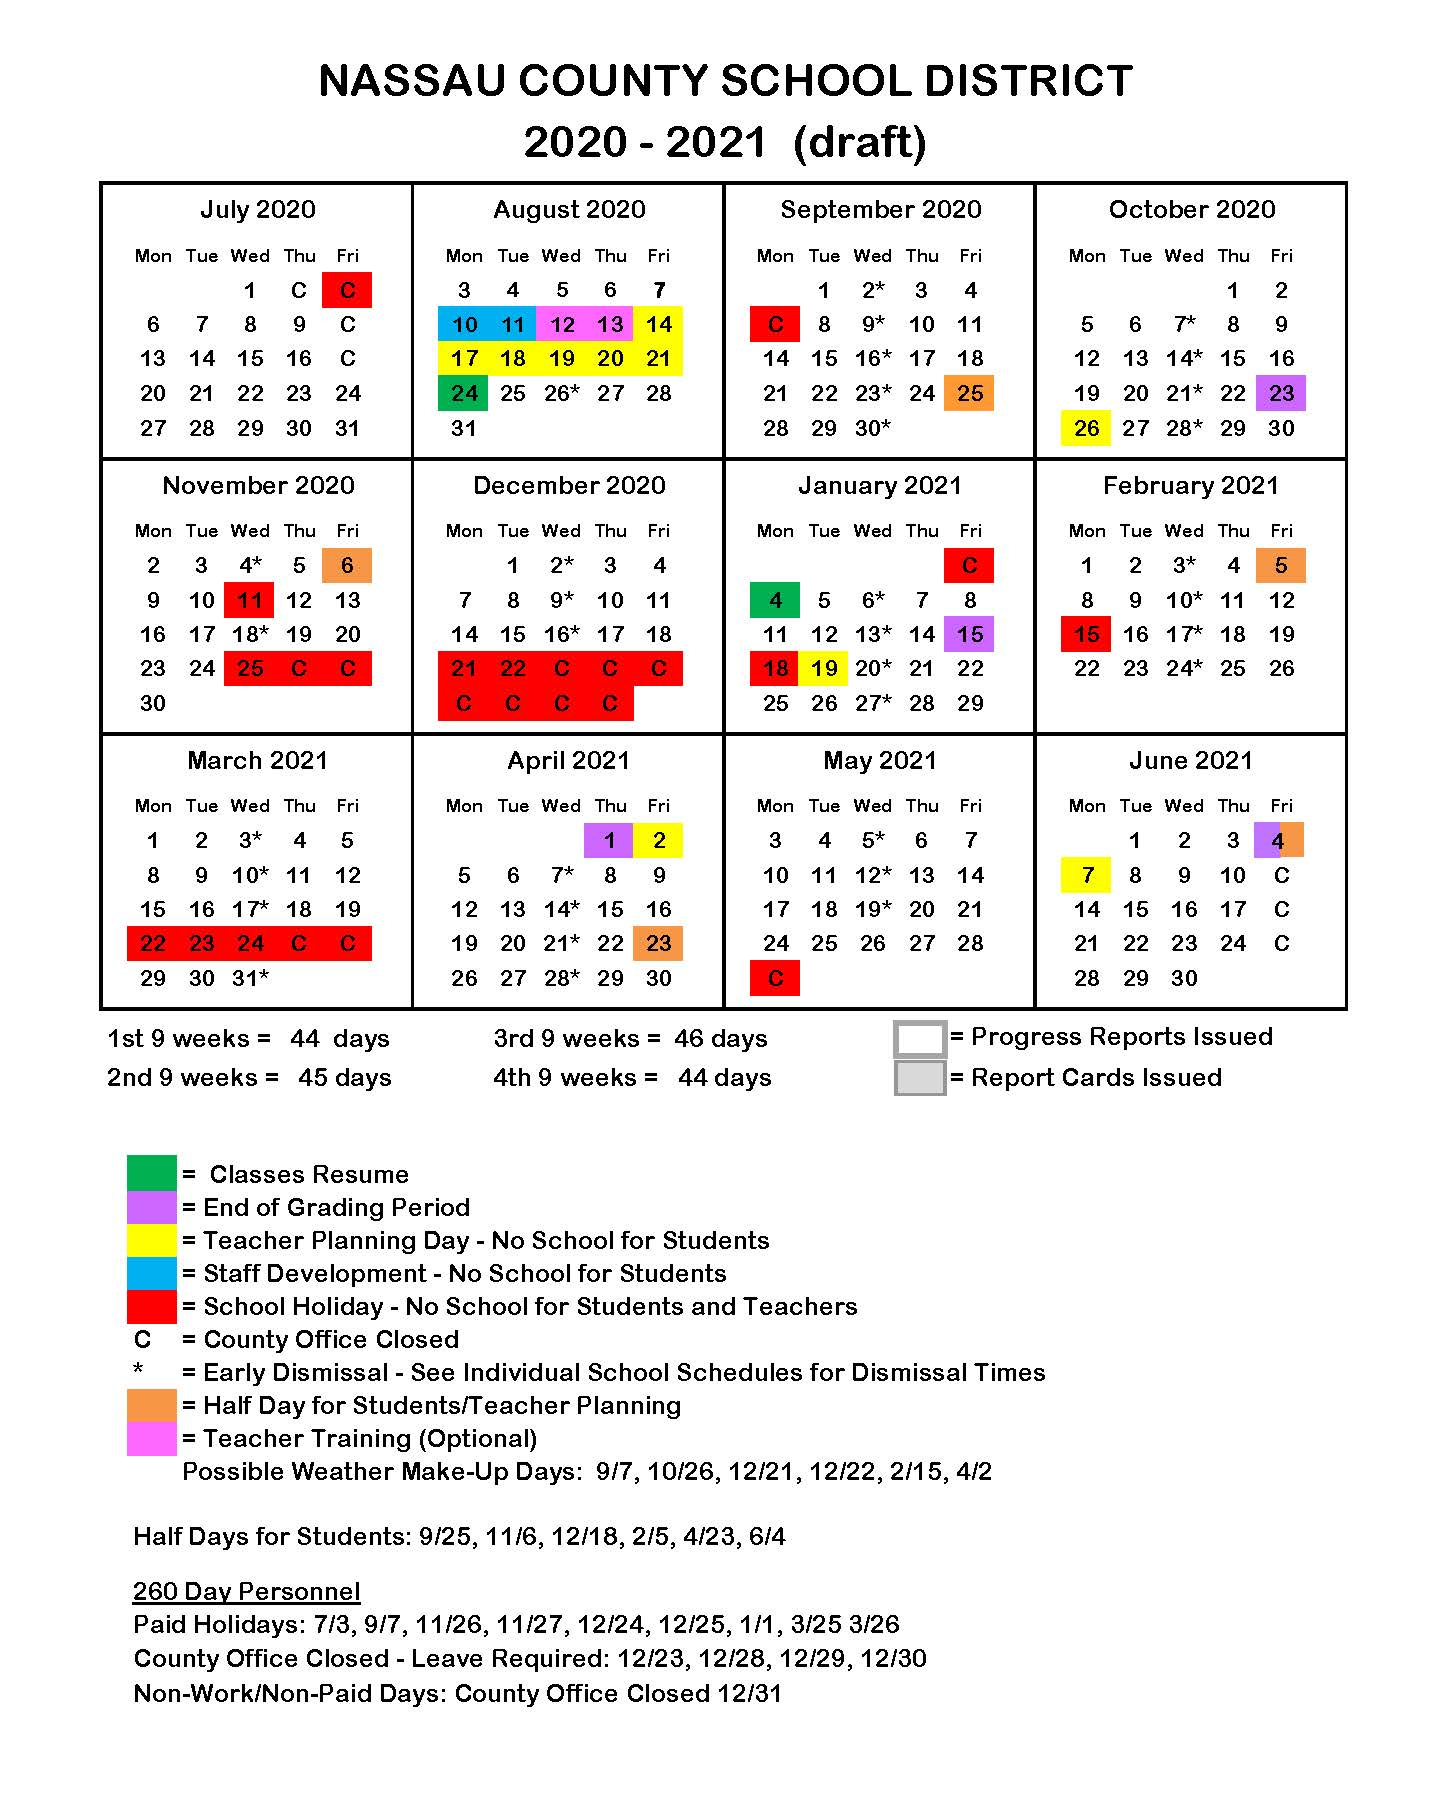 Florida Public School Calendars - All Districts Start Dates